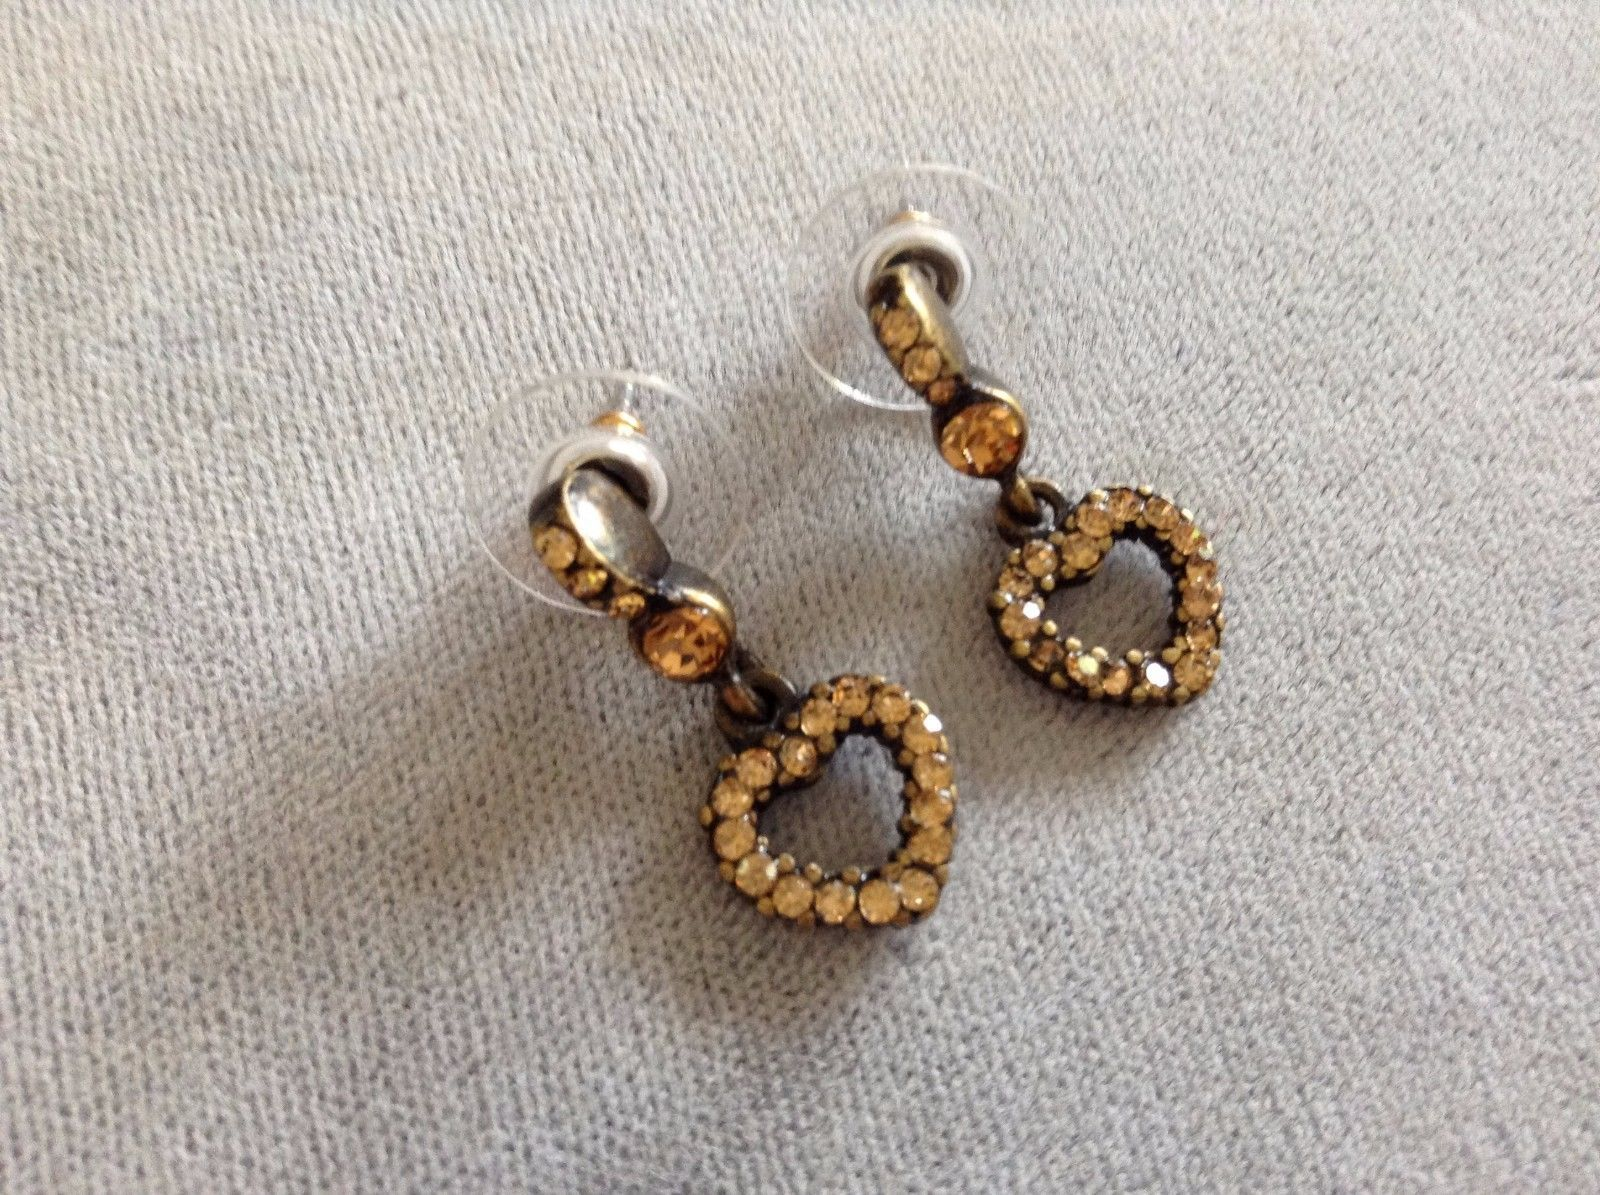 New Allure Earrings Bronze Gold Toned Elements Heart Shaped